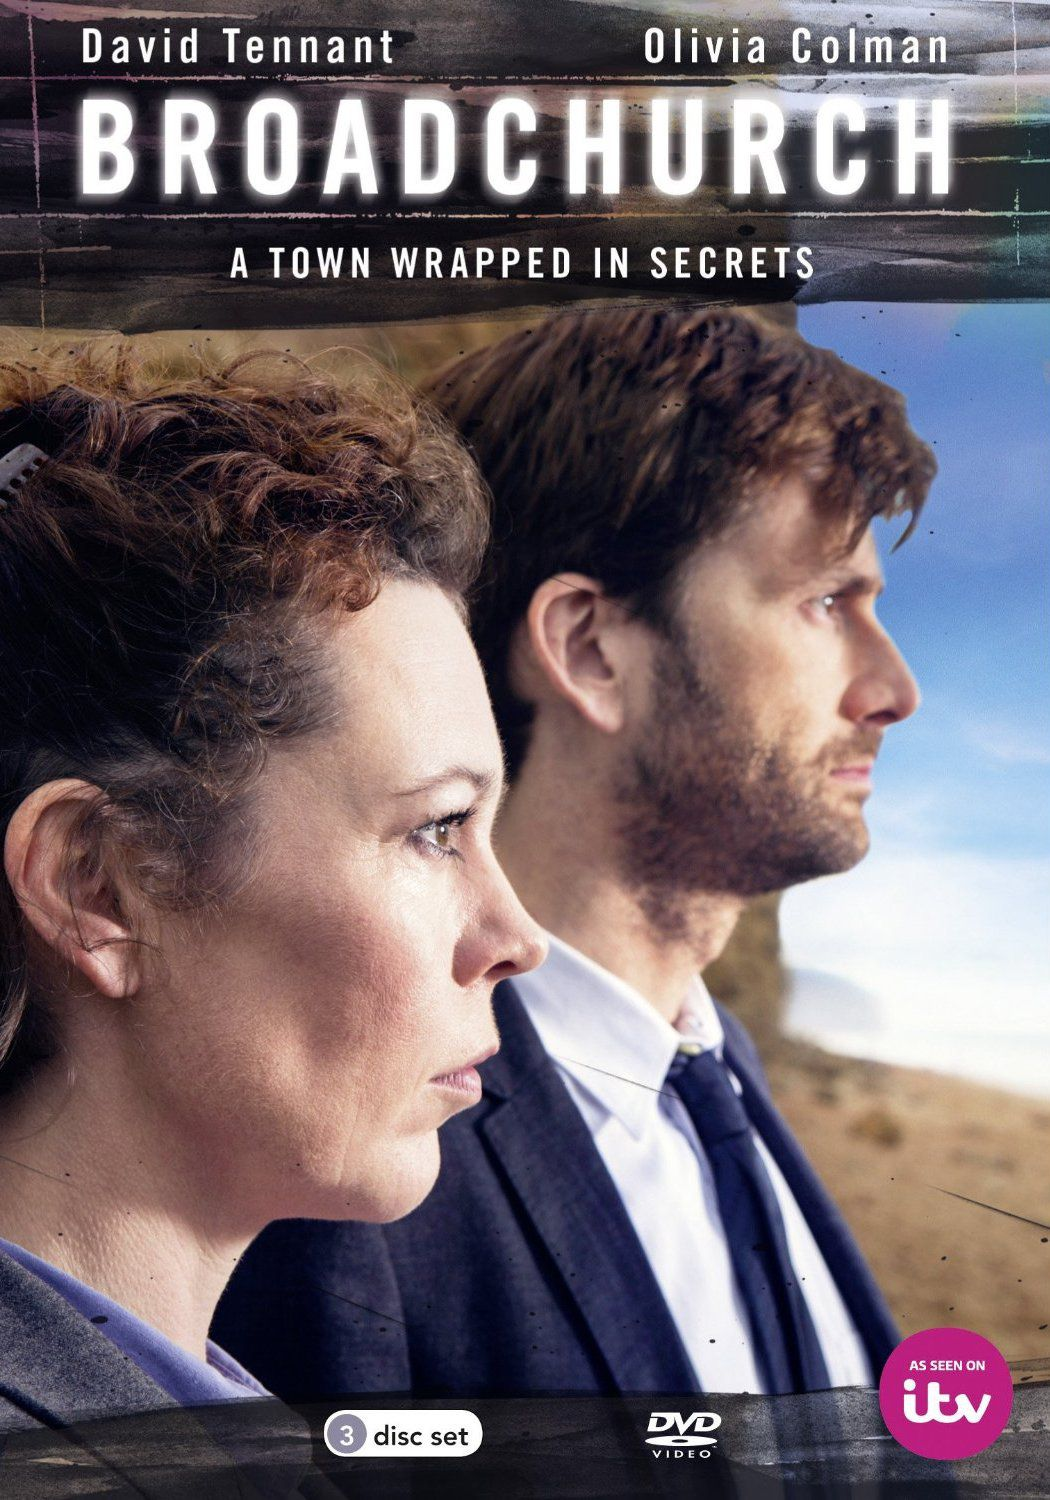 Broadchurch - Série (2013) streaming VF gratuit complet